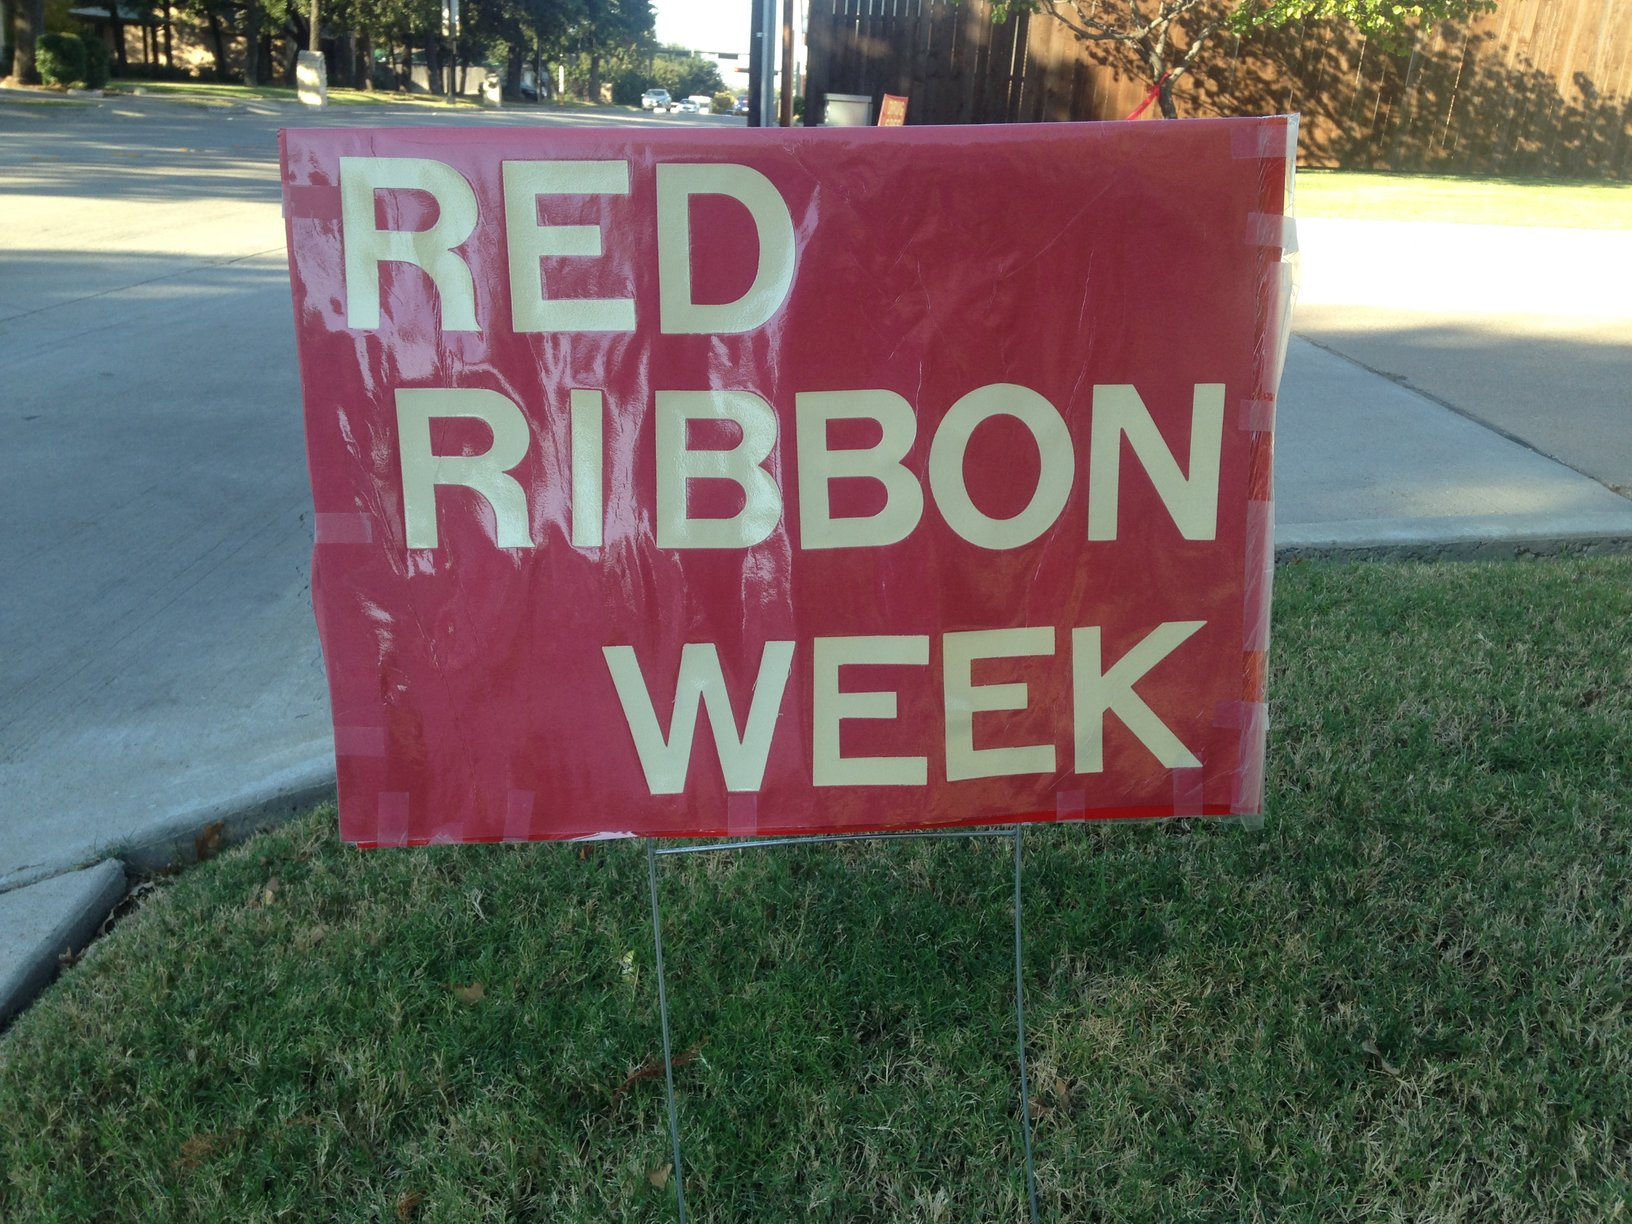 On Oct. 20, Coppell Middle School West held a drug awareness event, informing residents on drug use throughout Coppell. In honor of Red Ribbon Week, this event aimed to raise awareness on this issue.